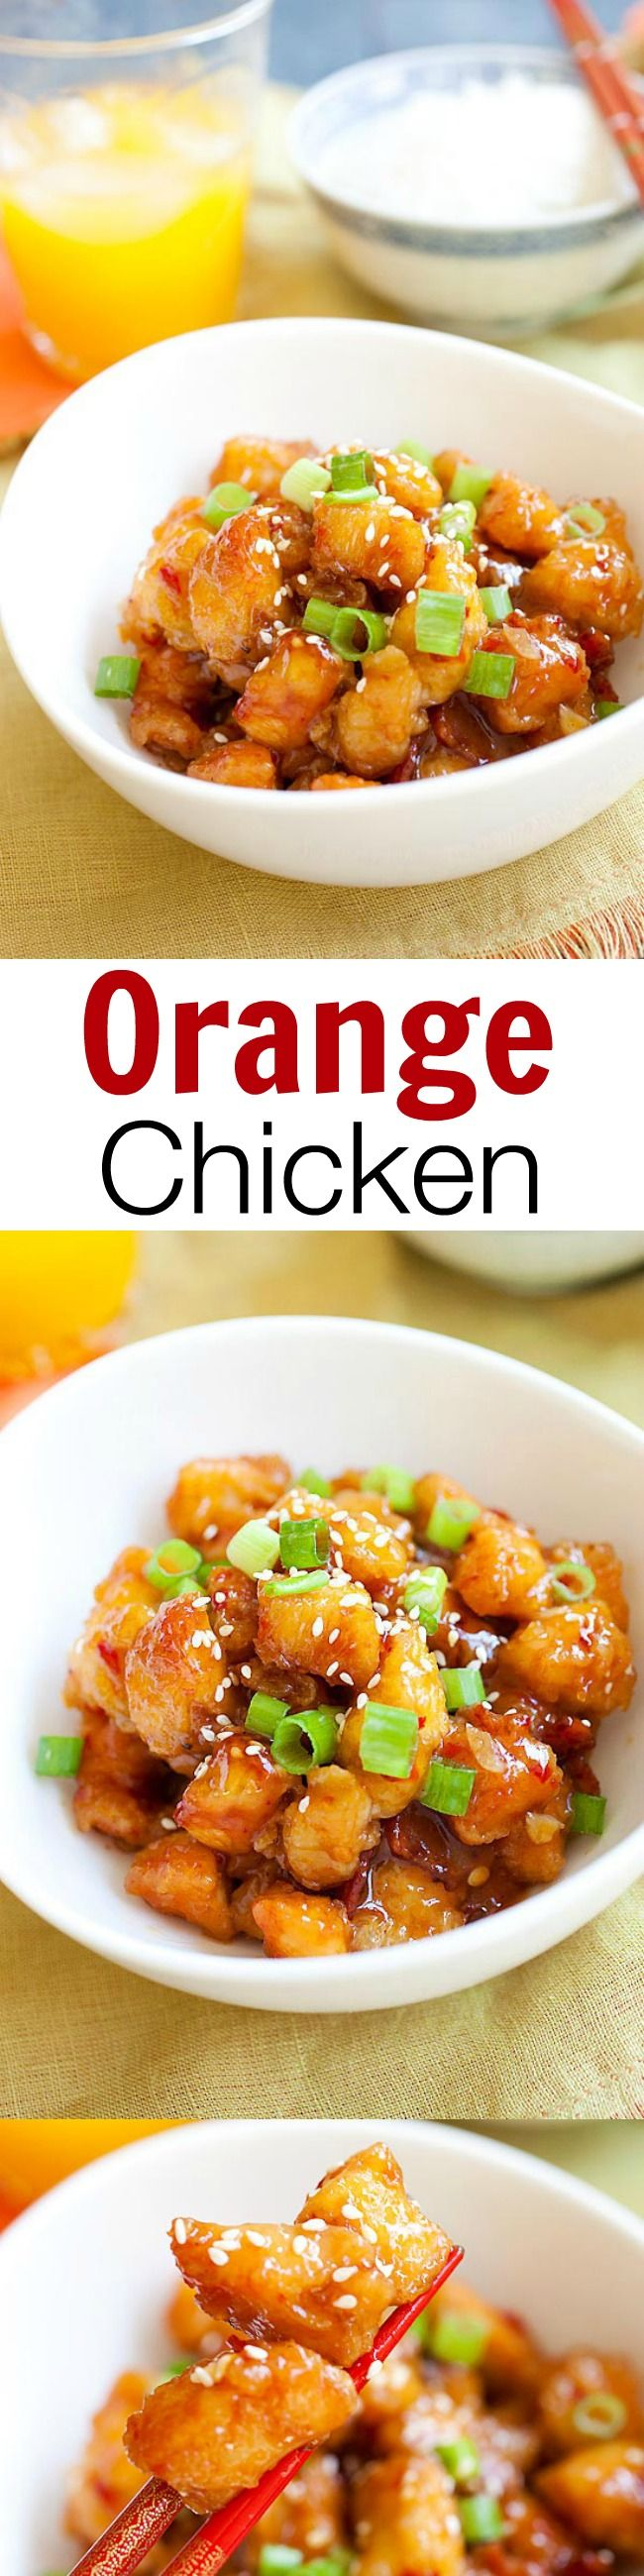 146 best chinese images on pinterest chinese food cooking food orange chicken crazy easy orange chicken recipe that takes 30 mins to make cheap forumfinder Image collections